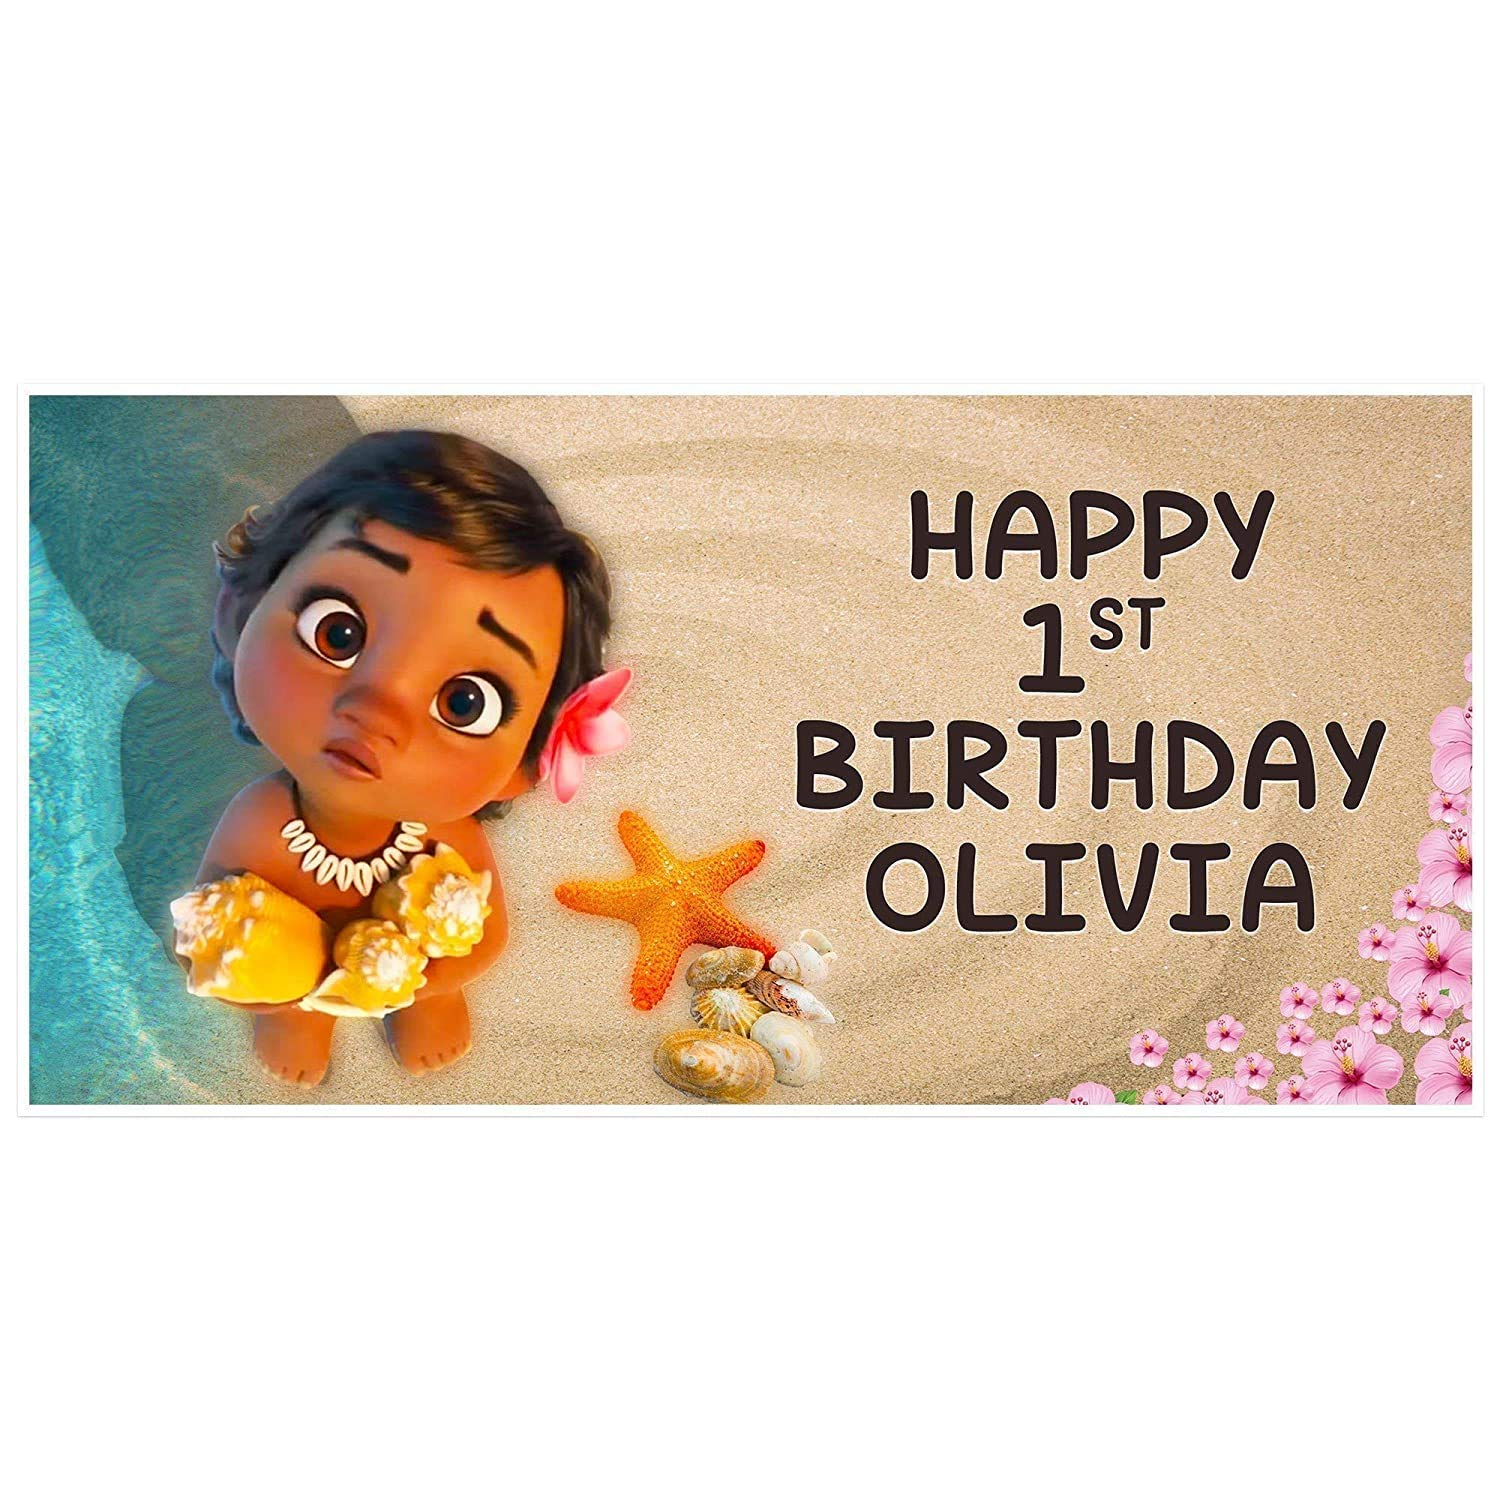 Baby Moana Birthday Banner Personalized Party Backdrop Decoration